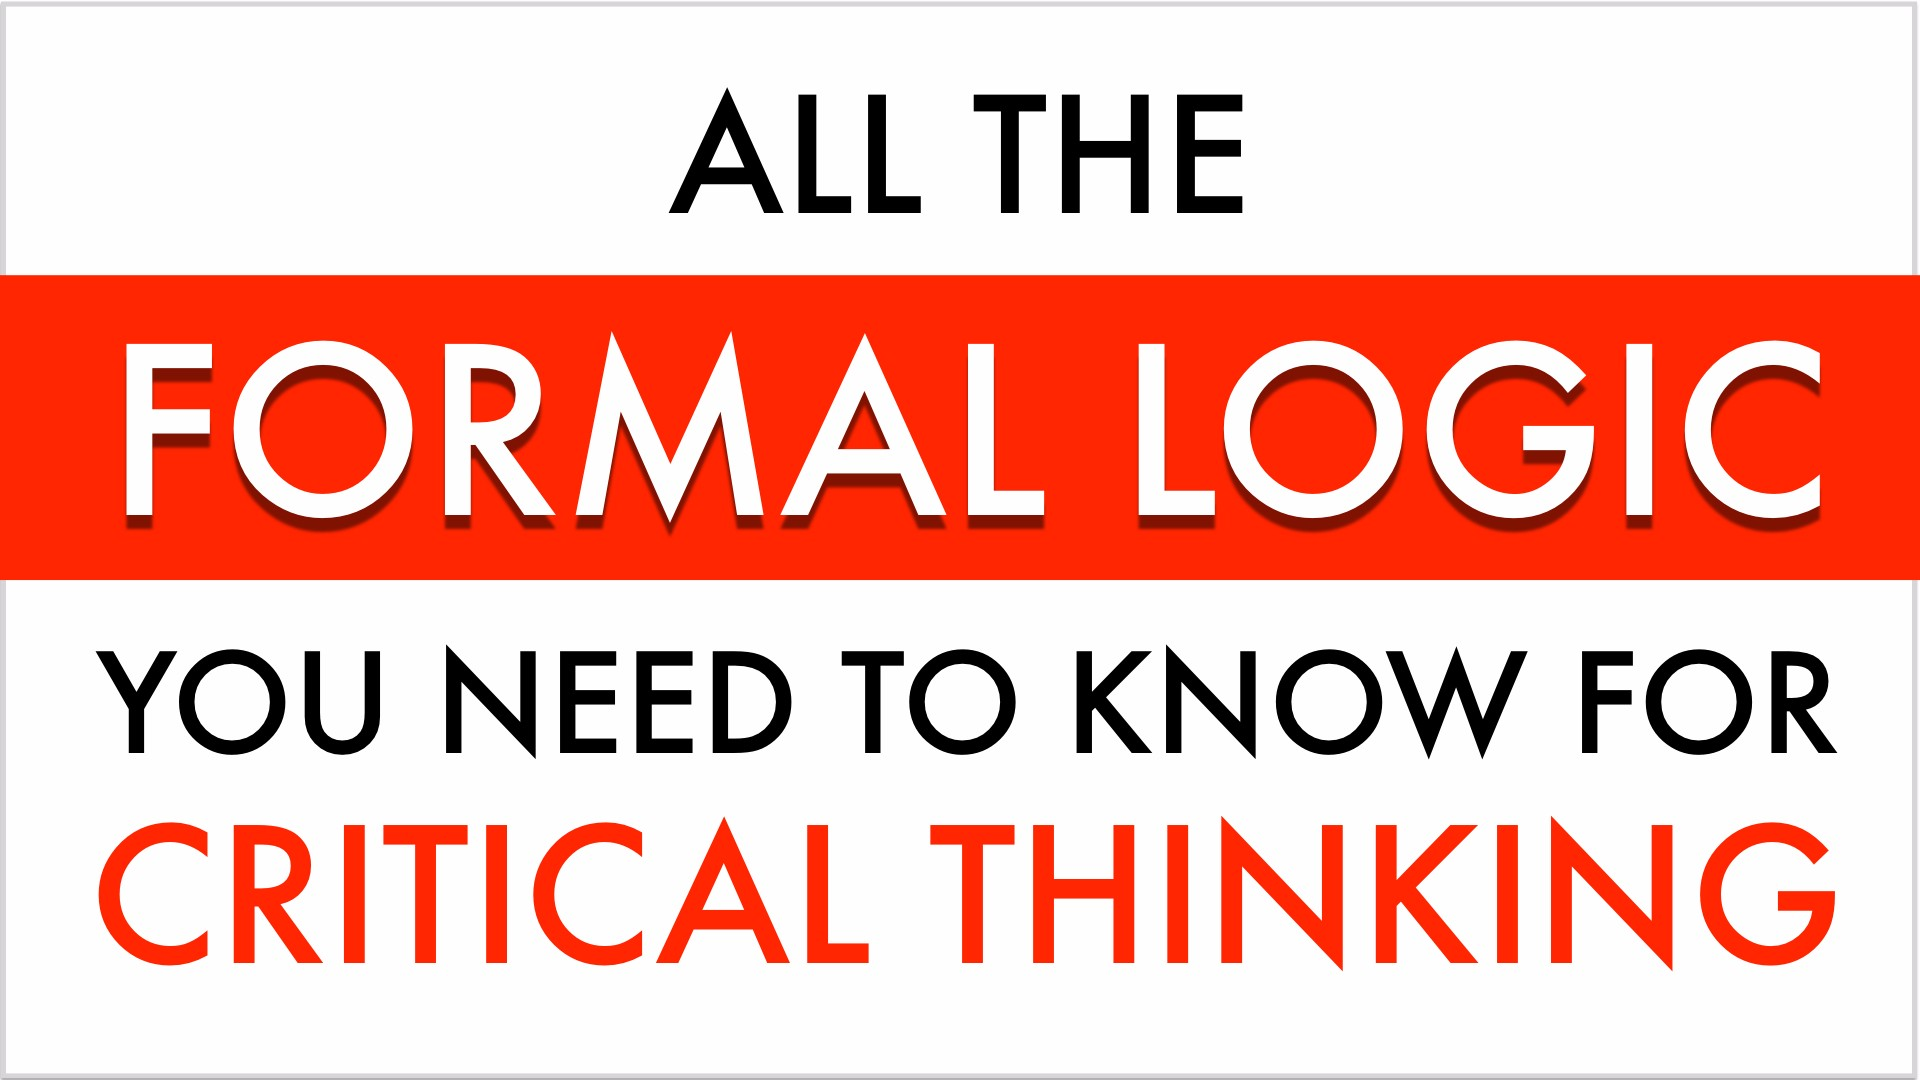 Formal Logic Was Developed To Understand The Nature Of Deductive